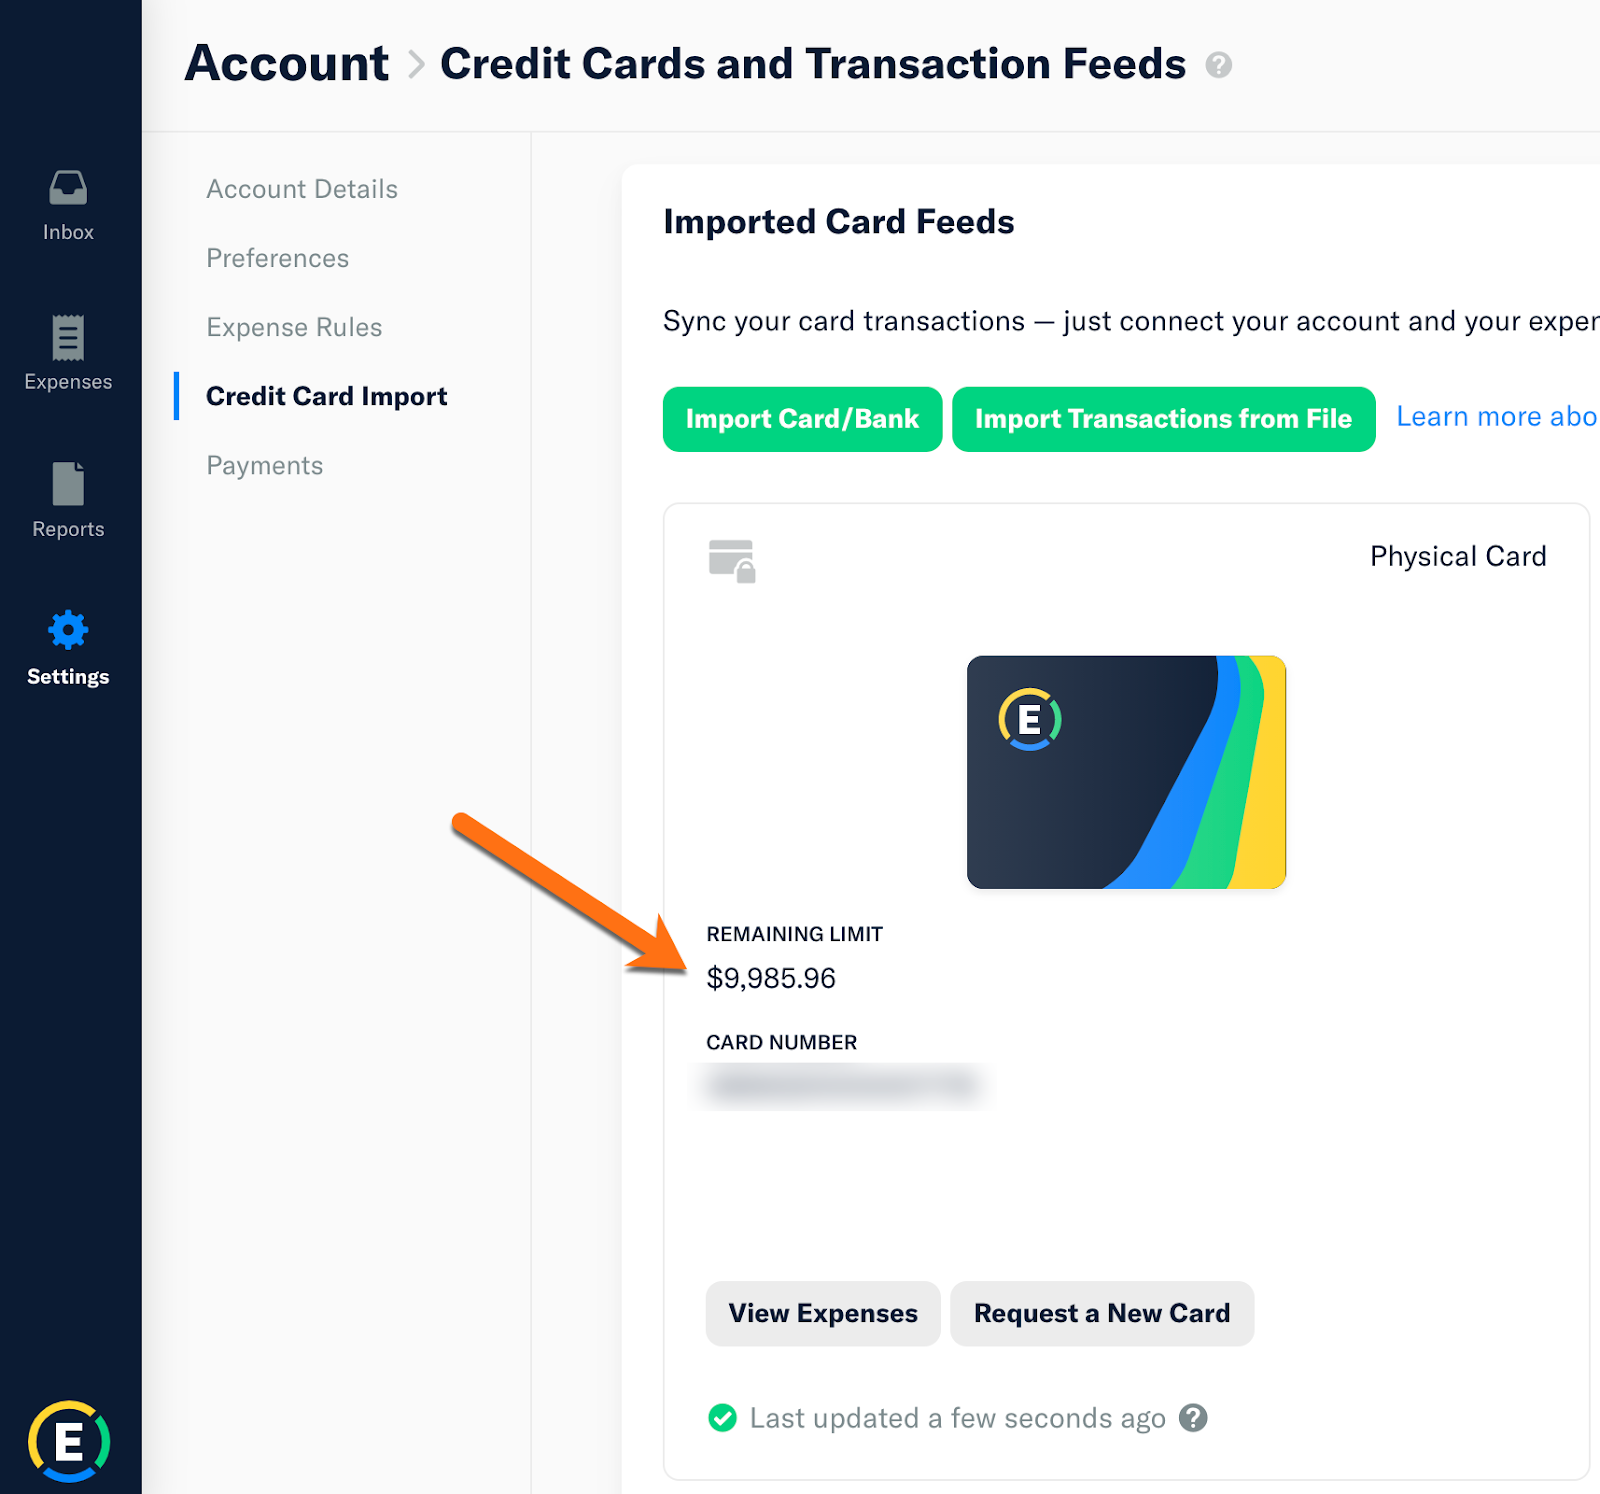 Screenshot of the Expensify Web App showing the Account > Credit Card Import page with the Smart Limit shown against the Expensify Card